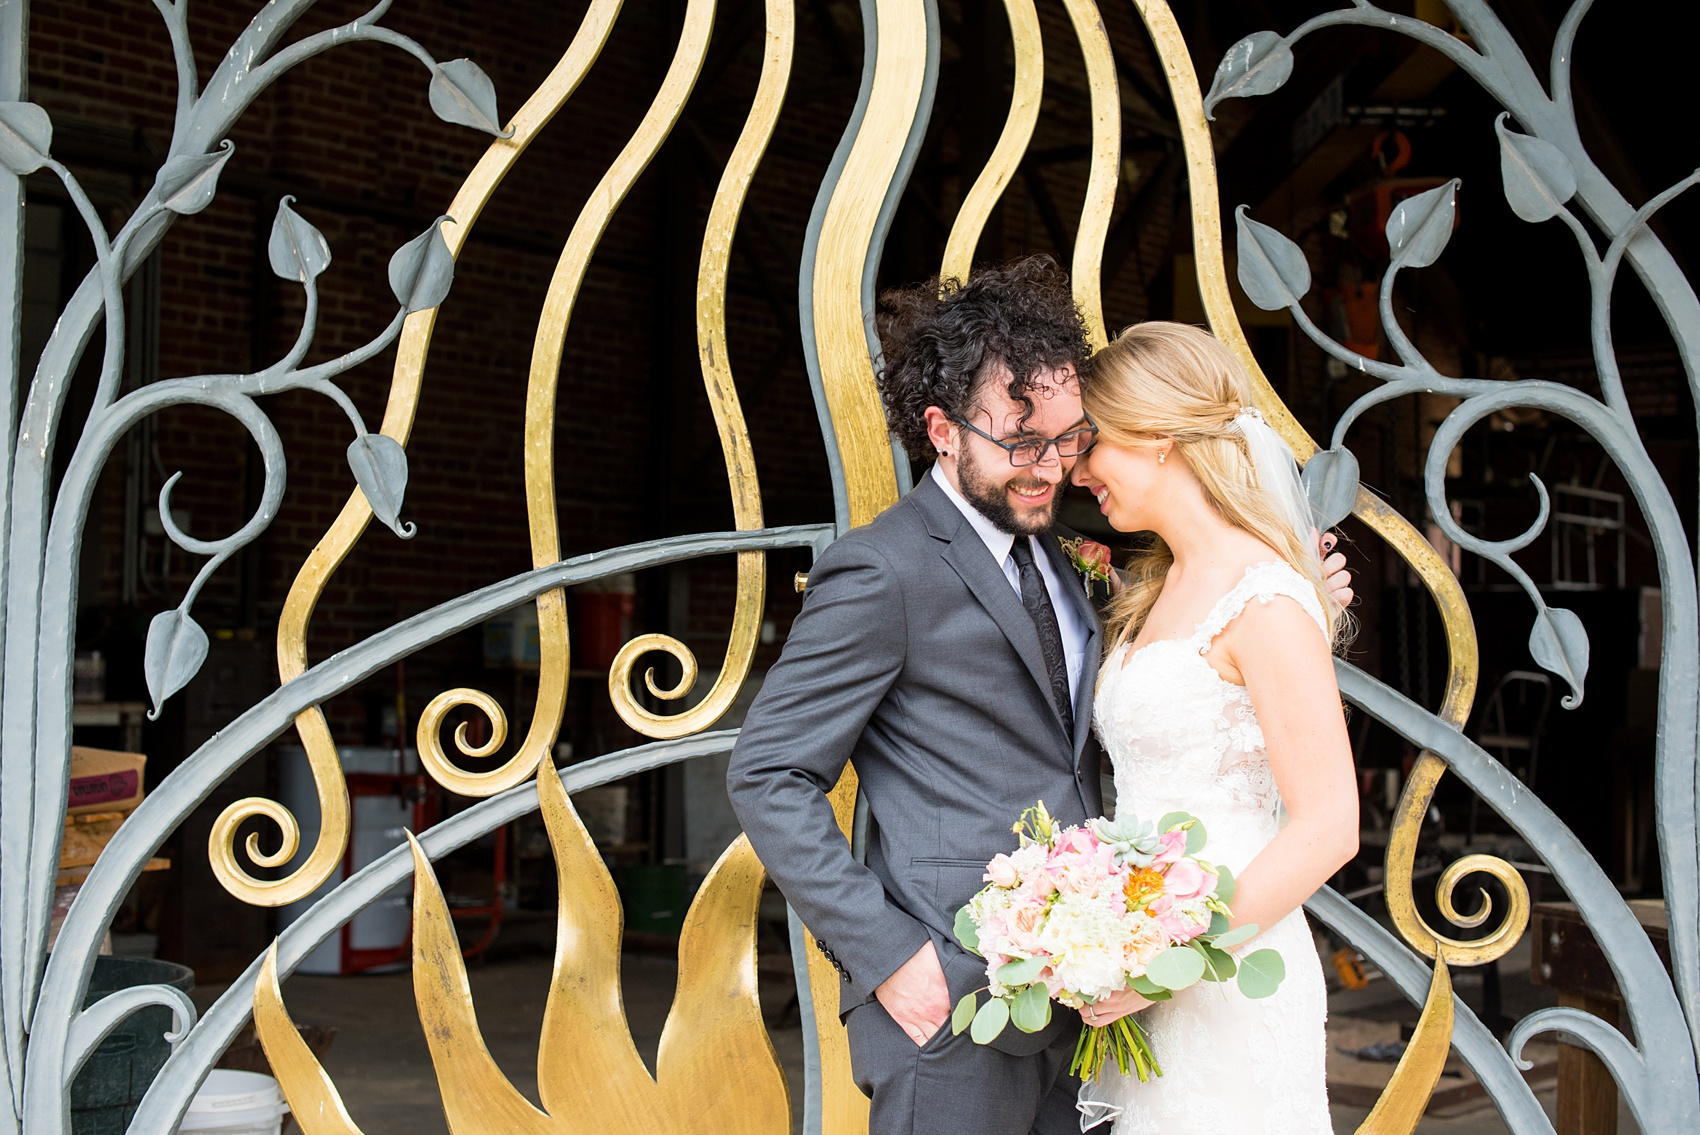 Mikkel Paige Photography photos from a wedding in Durham, North Carolina. Picture of the bride and groom in front of a black and gold gate.